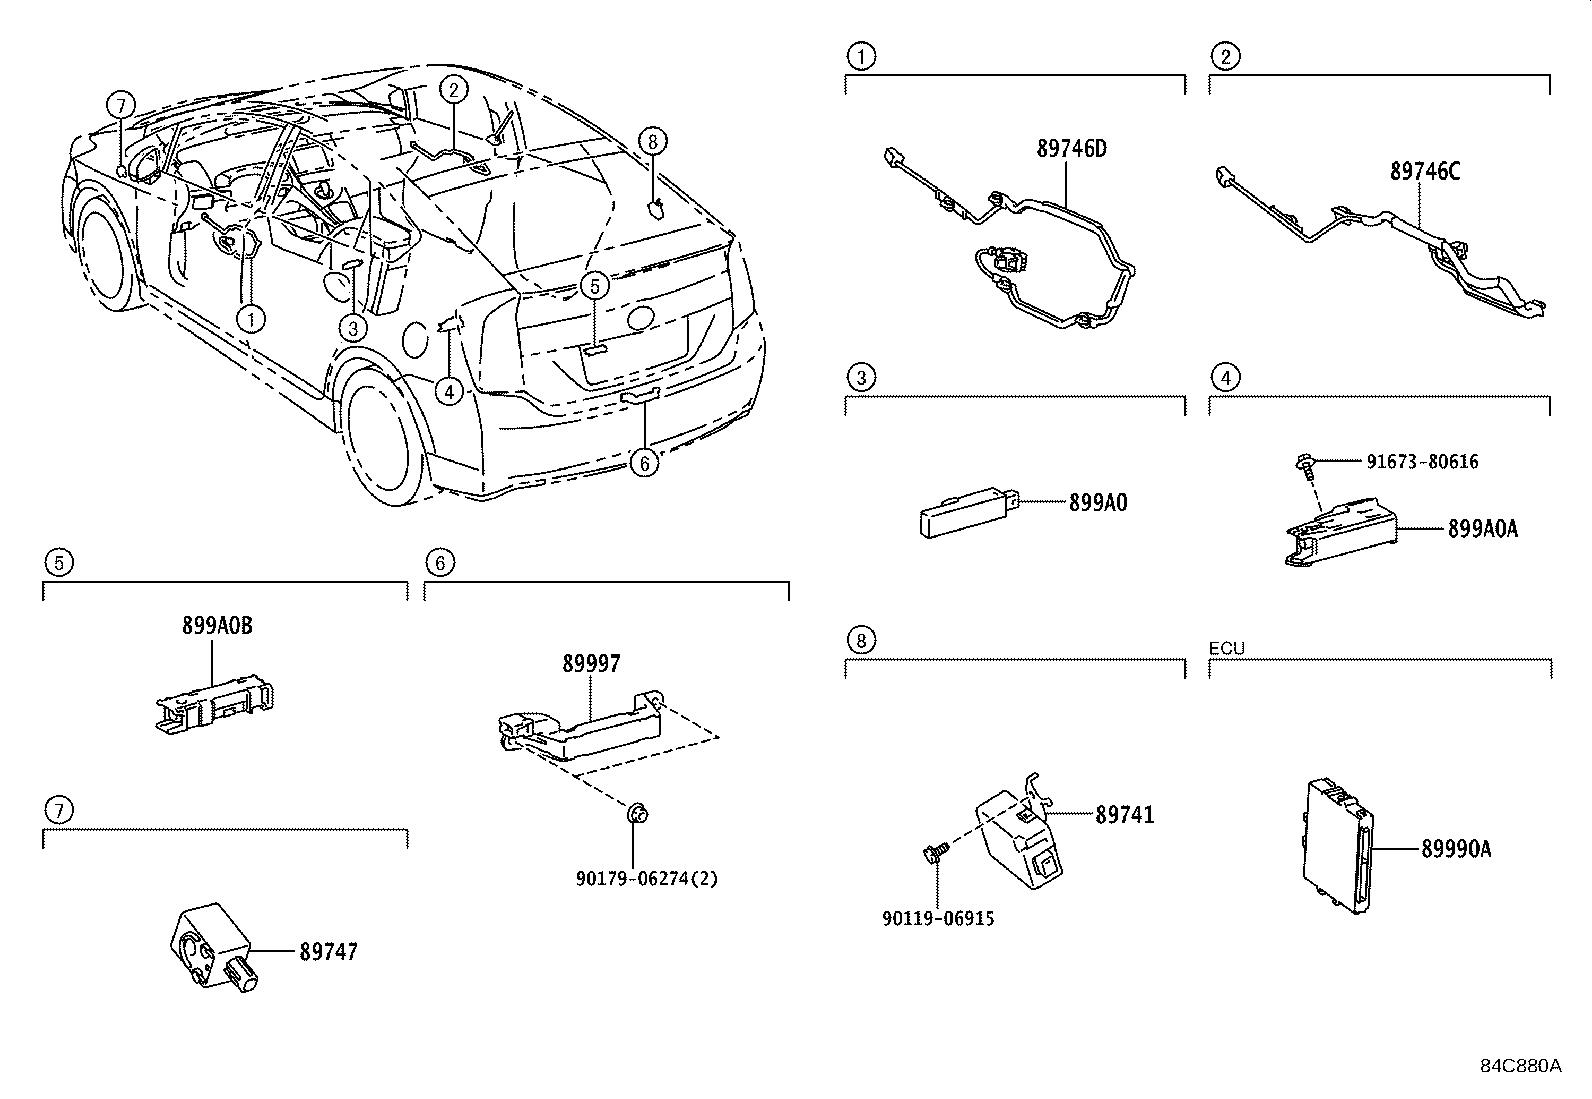 Toyota Prius Harness, electrical key wire, no. 2. Wireless